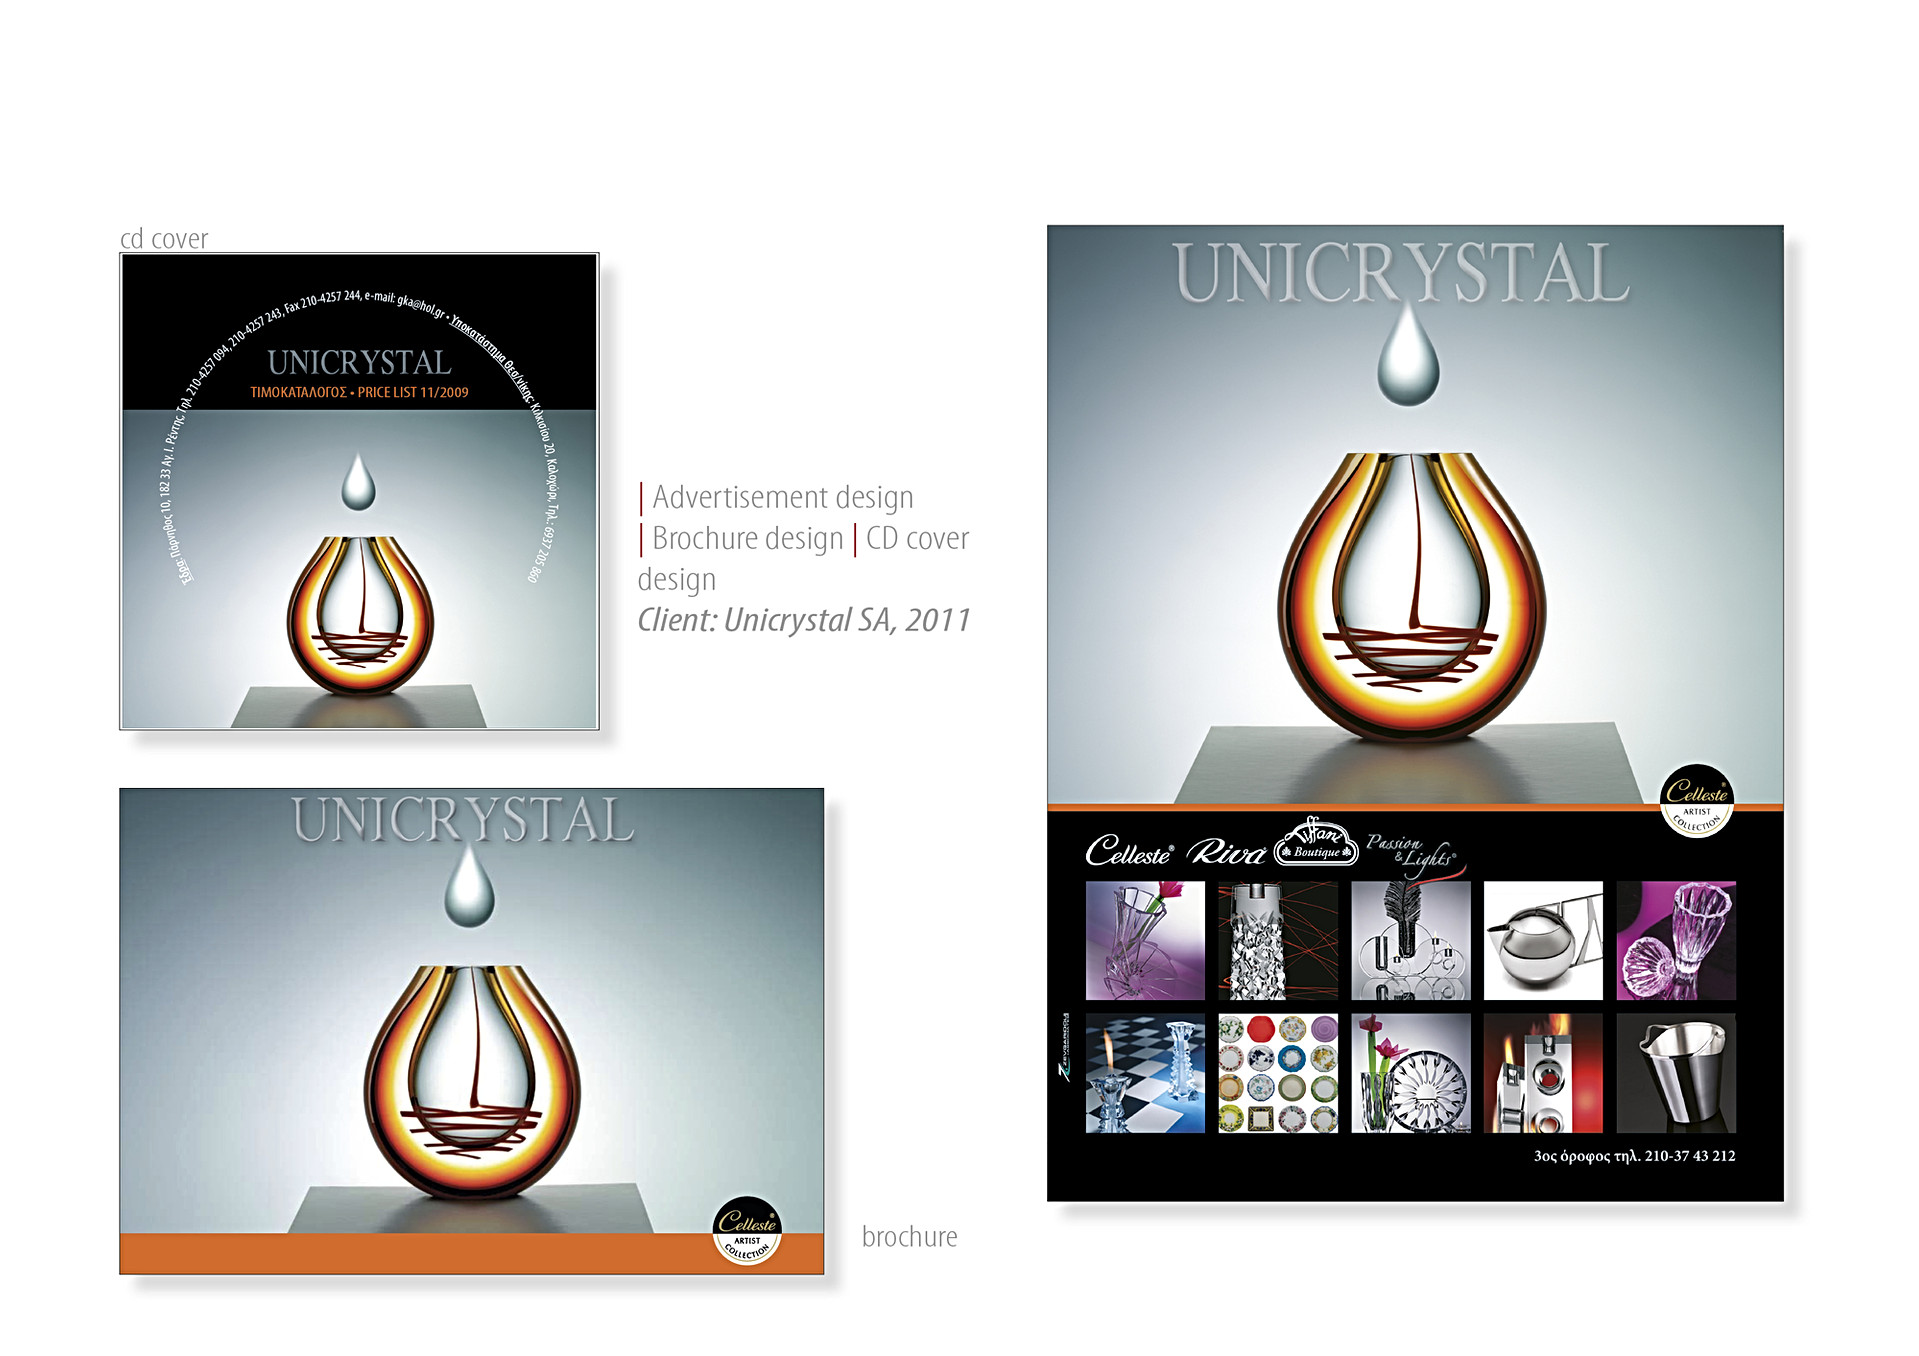 Unicrystal SA ads and promotional material